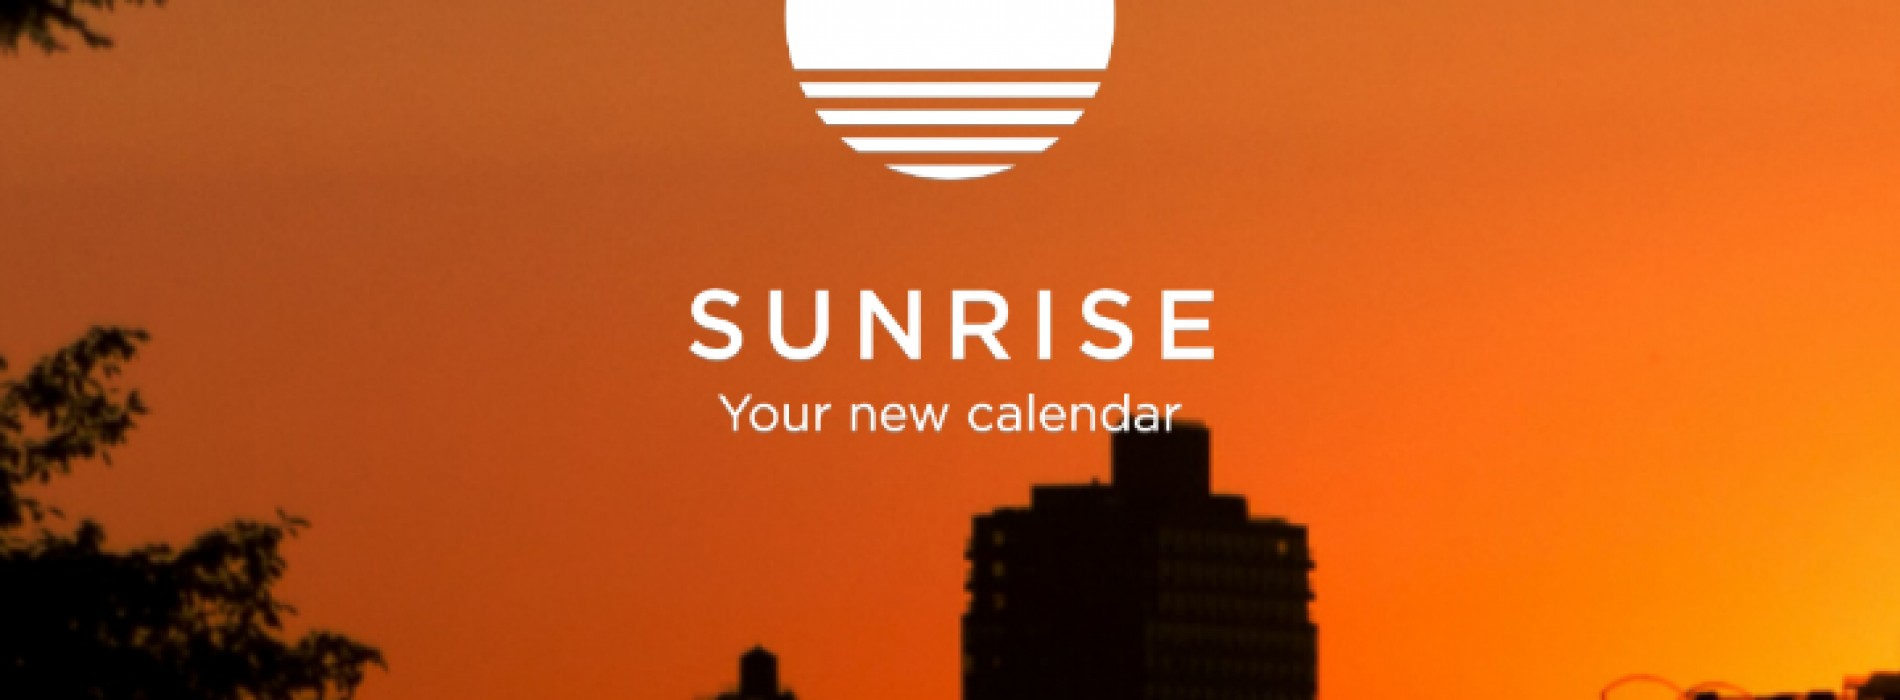 Our interview with Pierre Valade, CEO at Sunrise Calendar